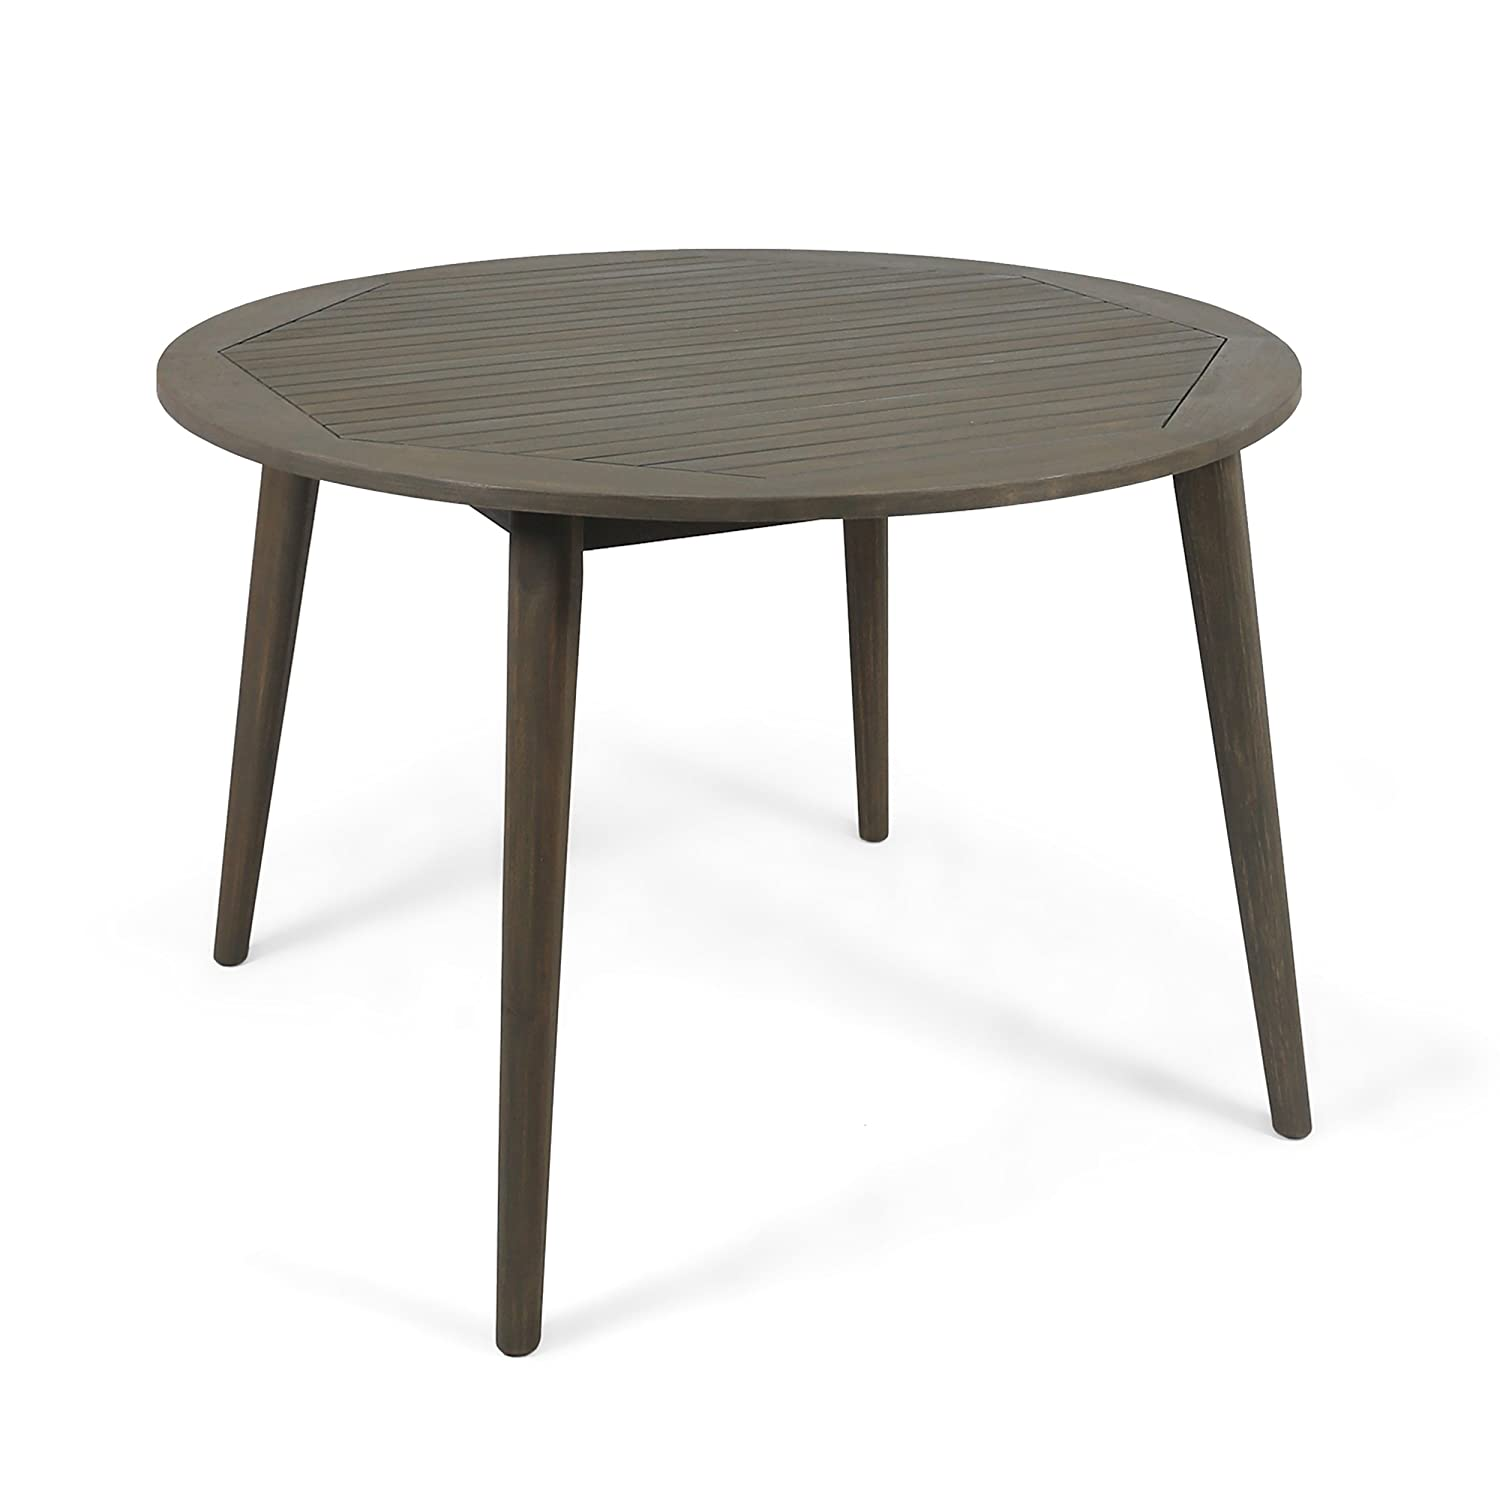 Amazon com great deal furniture nick outdoor acacia wood round dining table gray garden outdoor